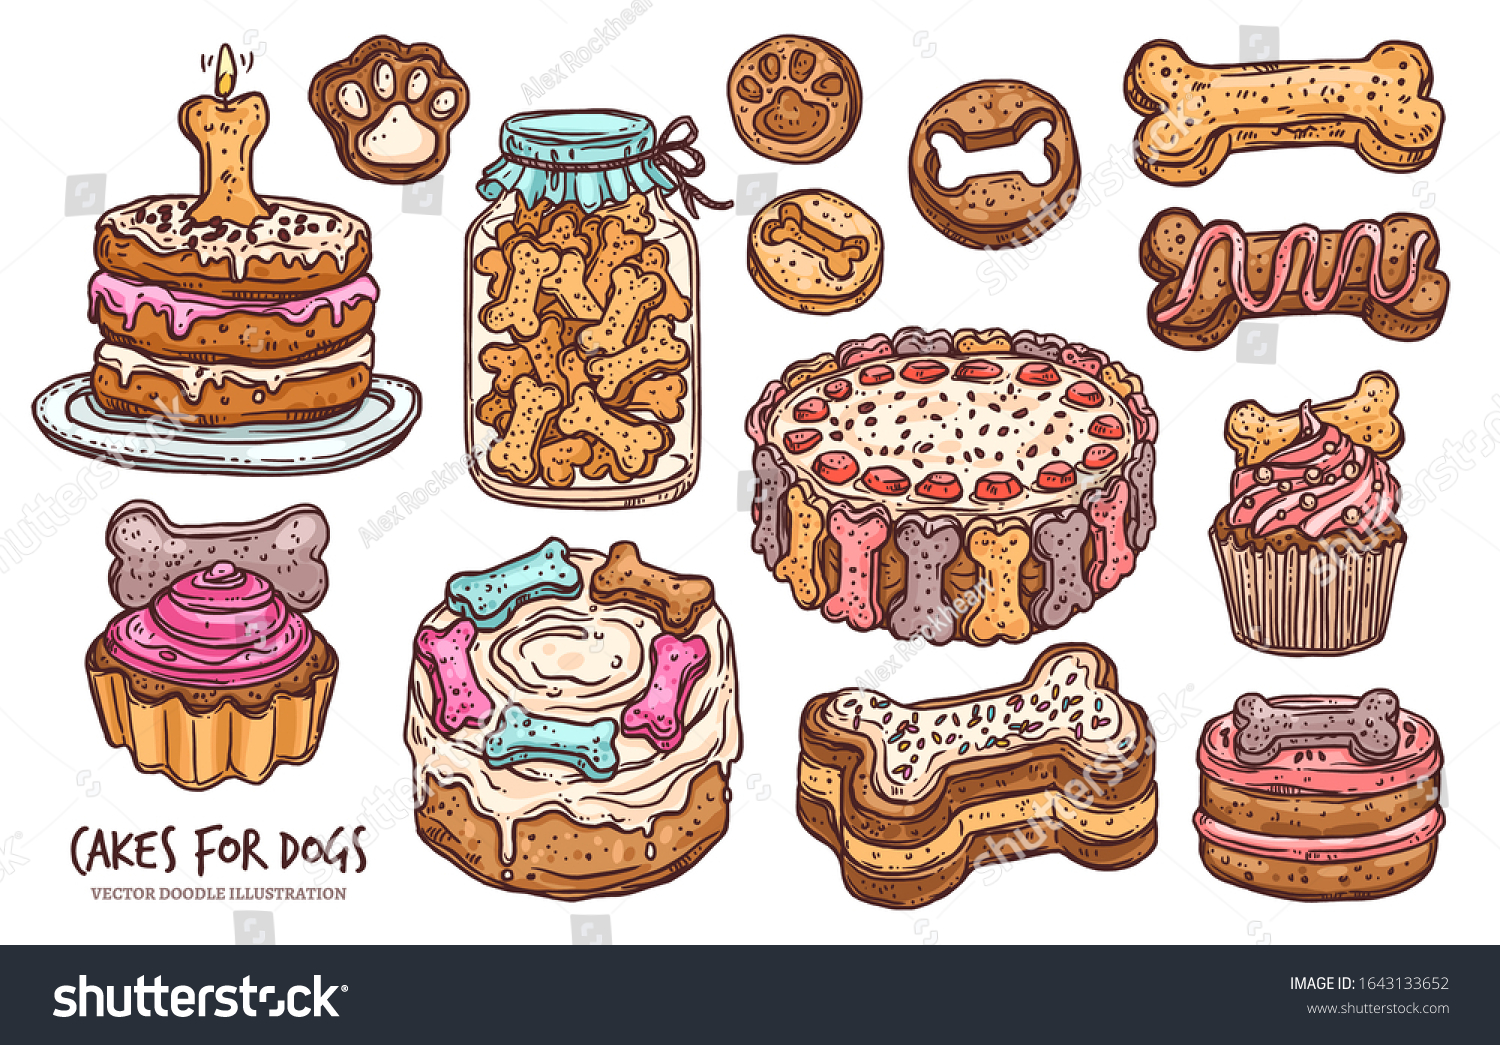 Admirable Set Pastry Cookie Cakes Dog Anniversary Stock Vector Royalty Free Funny Birthday Cards Online Alyptdamsfinfo